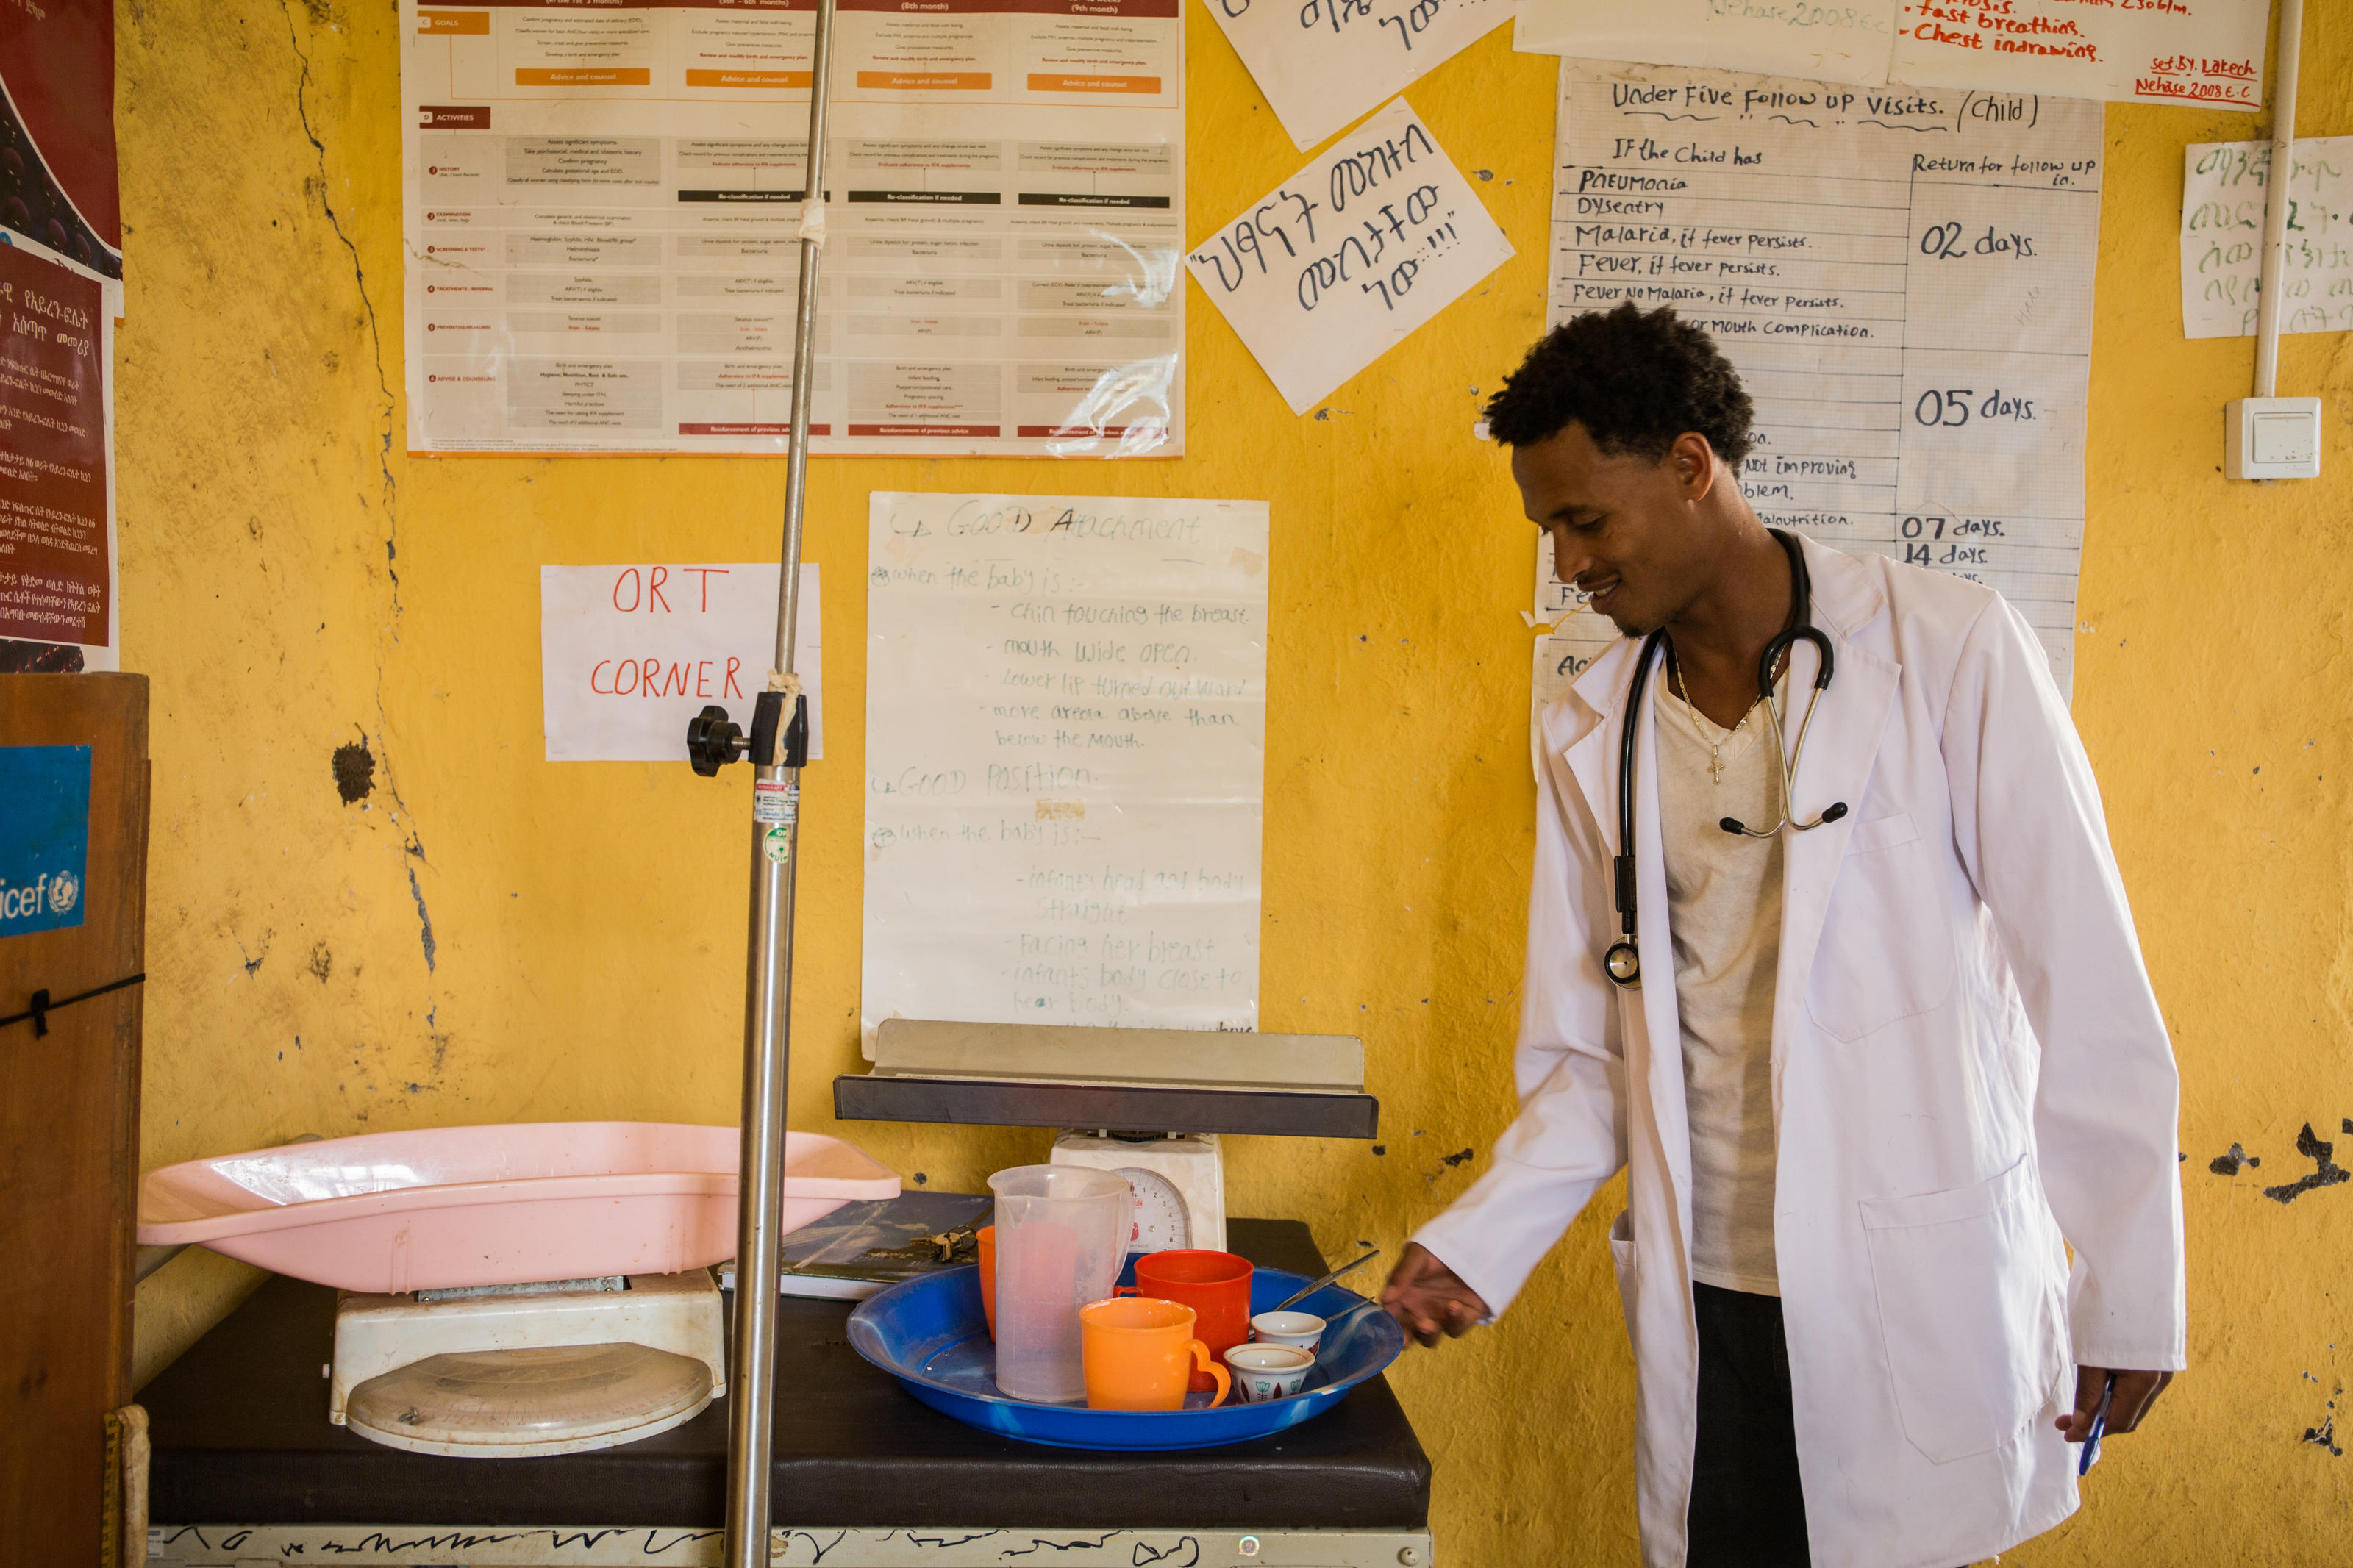 Yaye Wale, 25, a clinical nurse, standing with a cup of water and Oral Rehydration Therapy (ORS) he uses to demonstrate for parents whose children have diarrhea, Yiraber Health Centre, Ethiopia